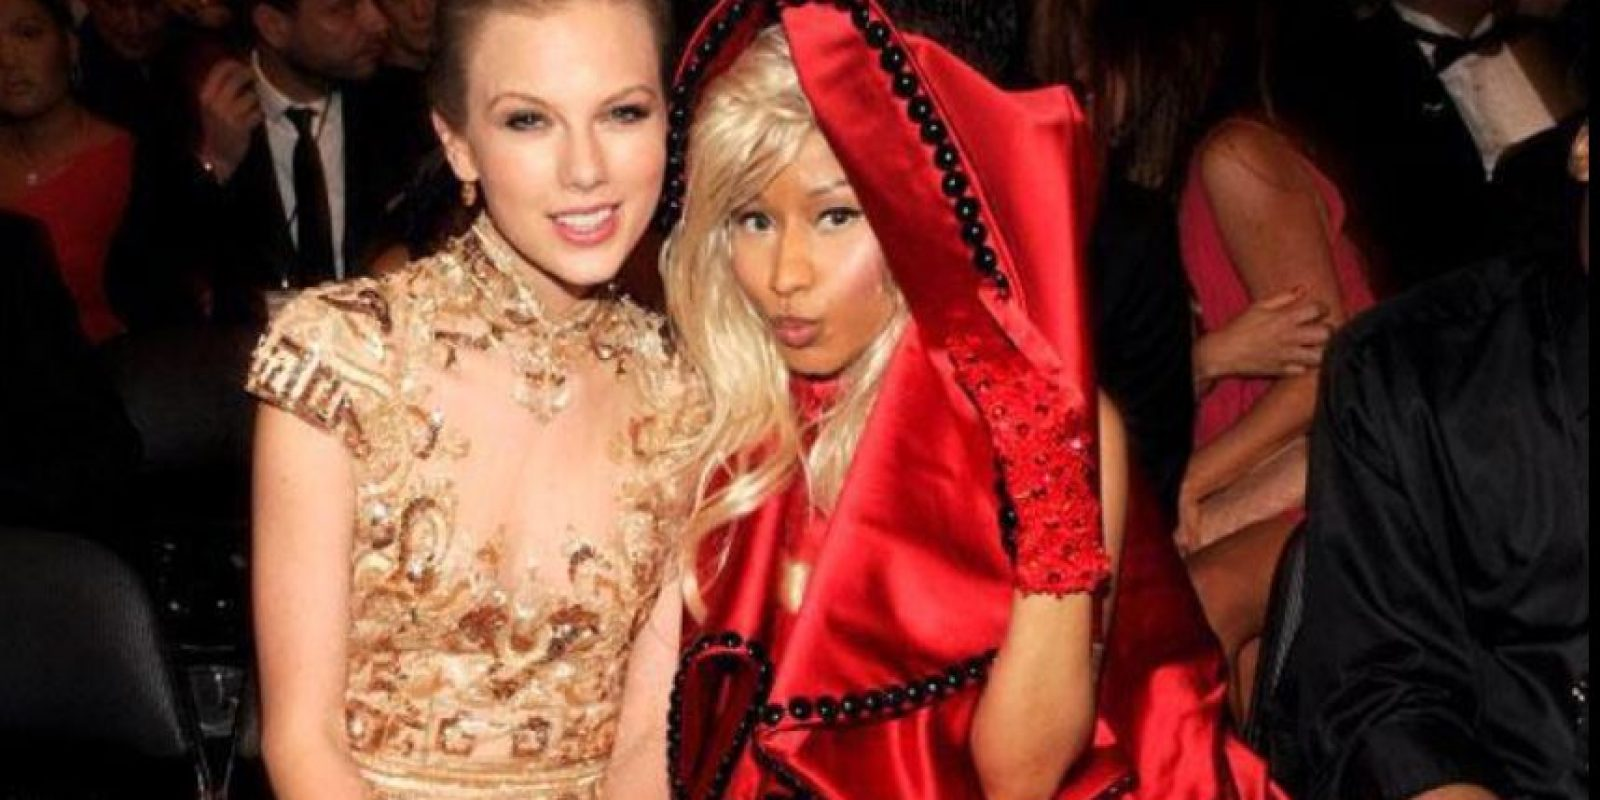 Internet gozó bellamente con la pelea de Nicki Minaj y Taylor Swift. Foto: vía Getty Images